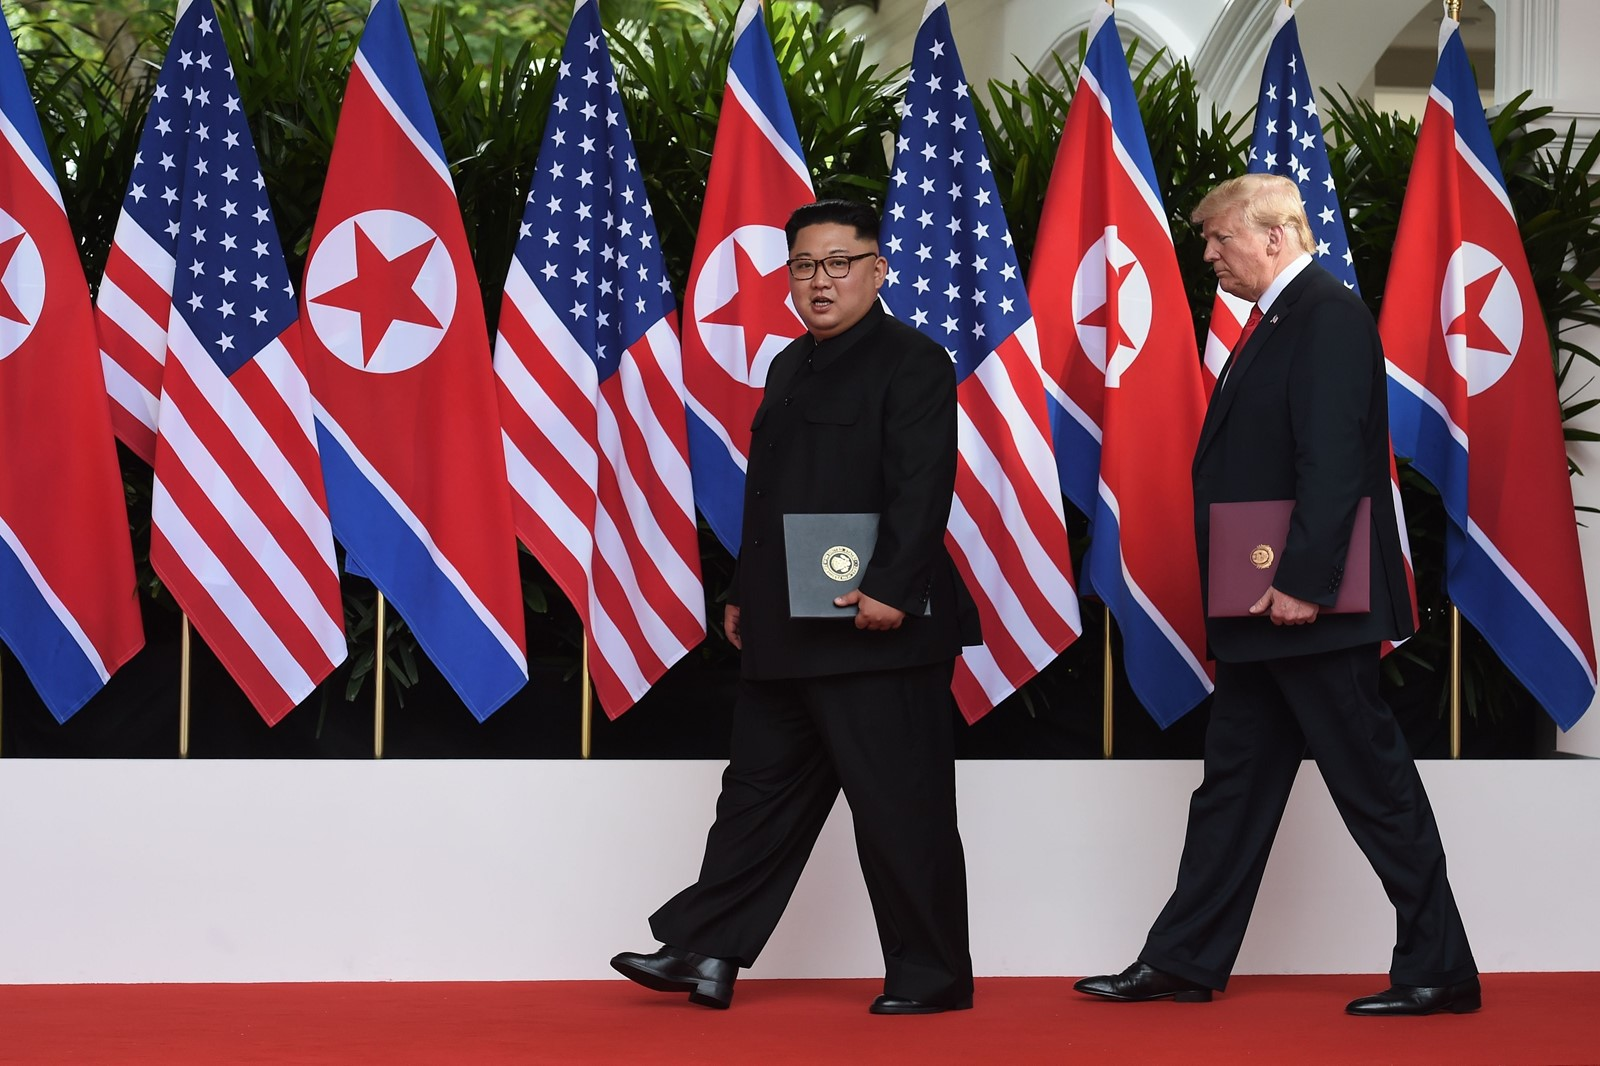 After a summit with North Korea's Kim Jong Un, President Donald J. Trump halted military drills with South Korea. — Photograph: Anthony Wallace/Pool Photo.